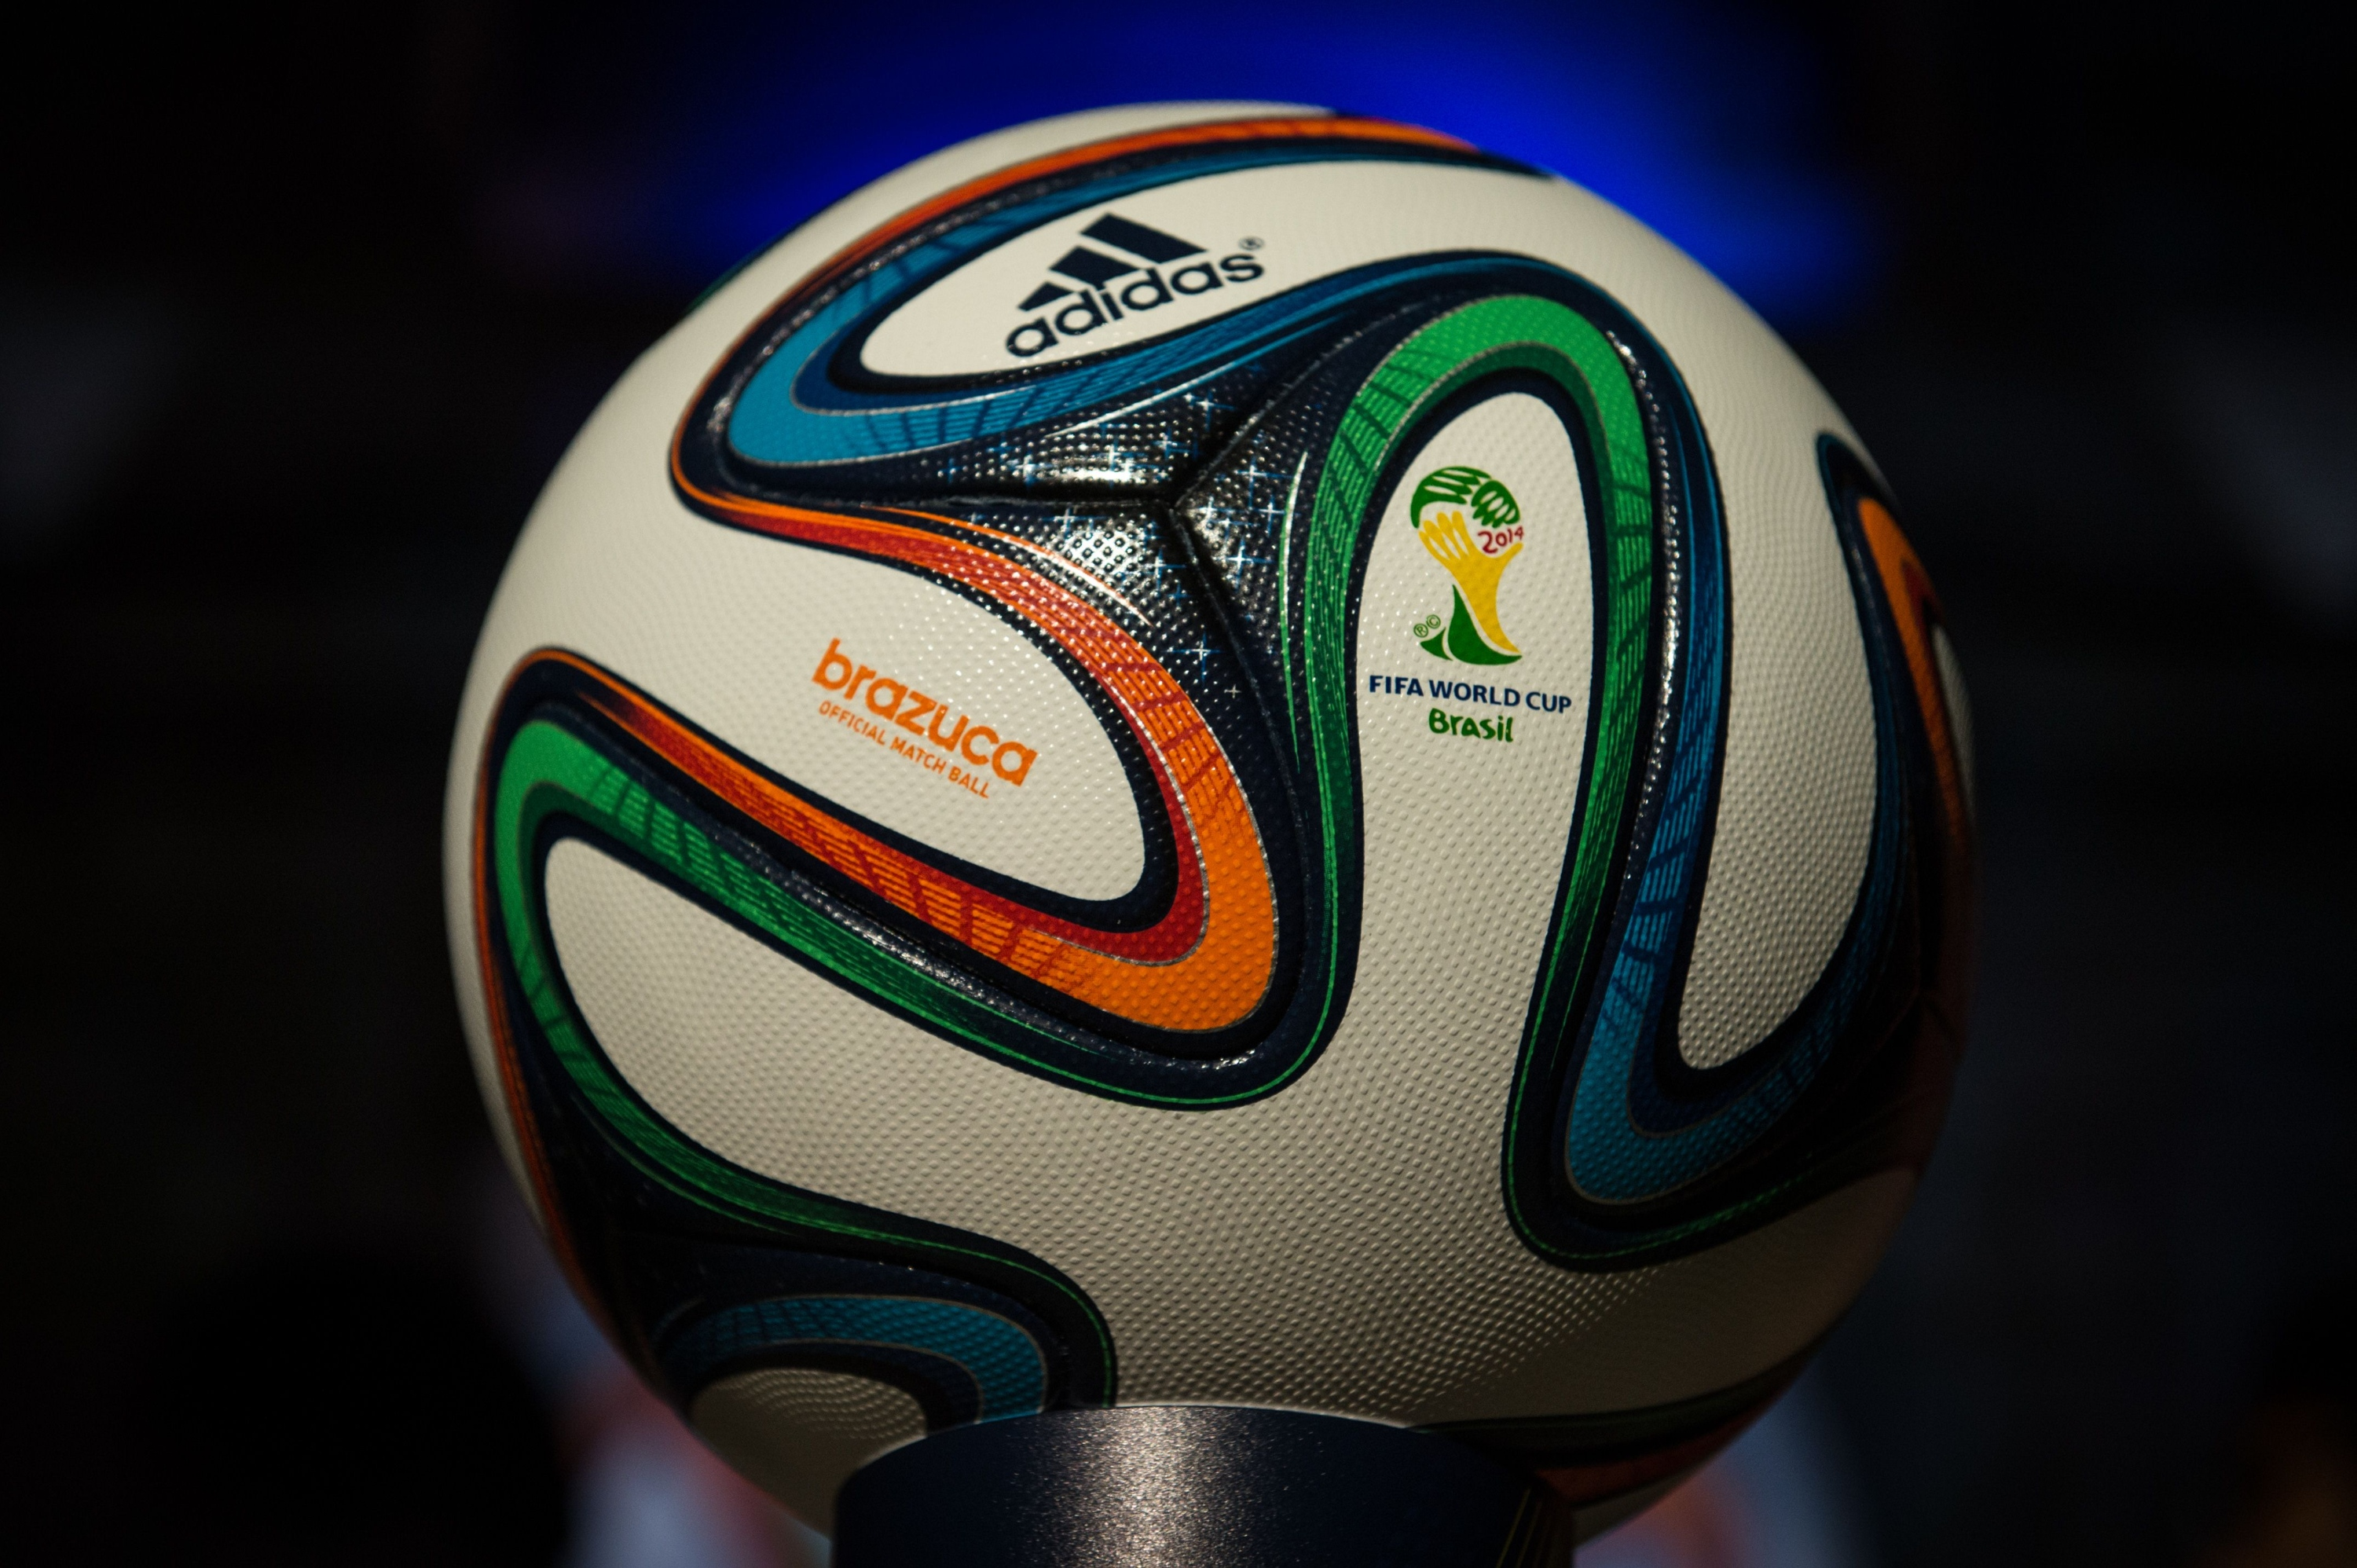 countdown to world cup 2014 brazuca official match ball